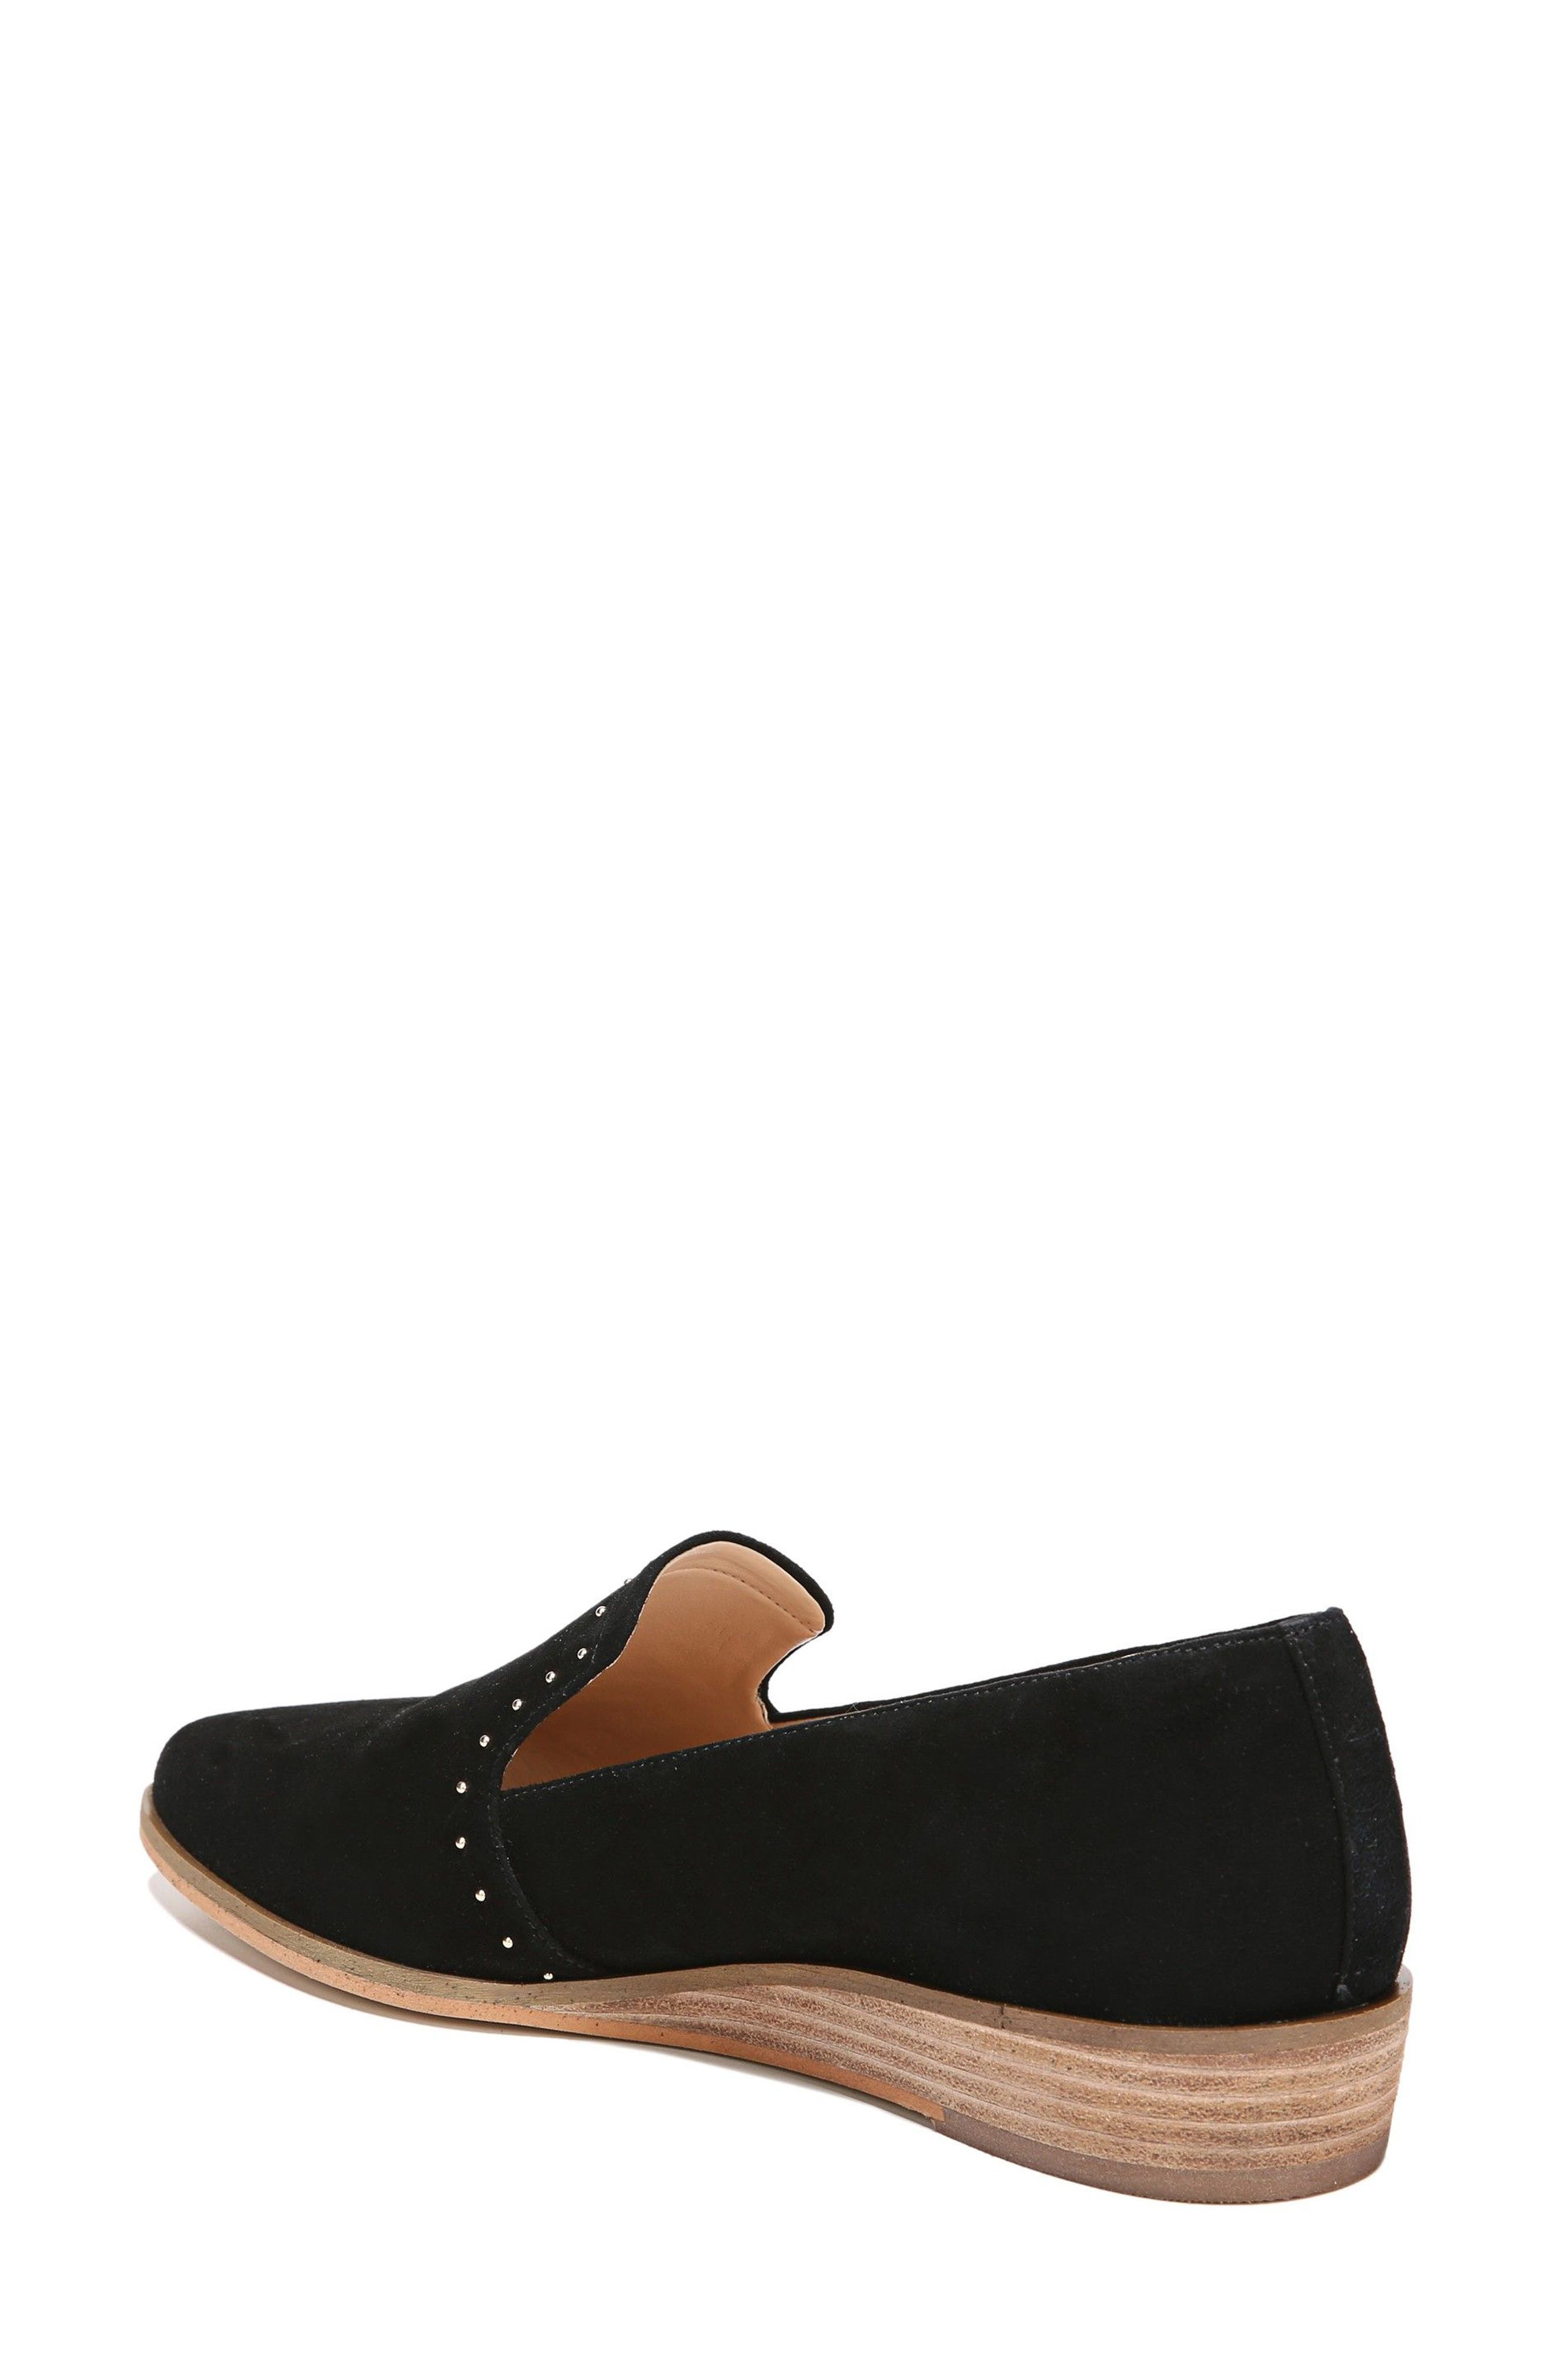 Keane Loafer Wedge,                             Alternate thumbnail 2, color,                             001